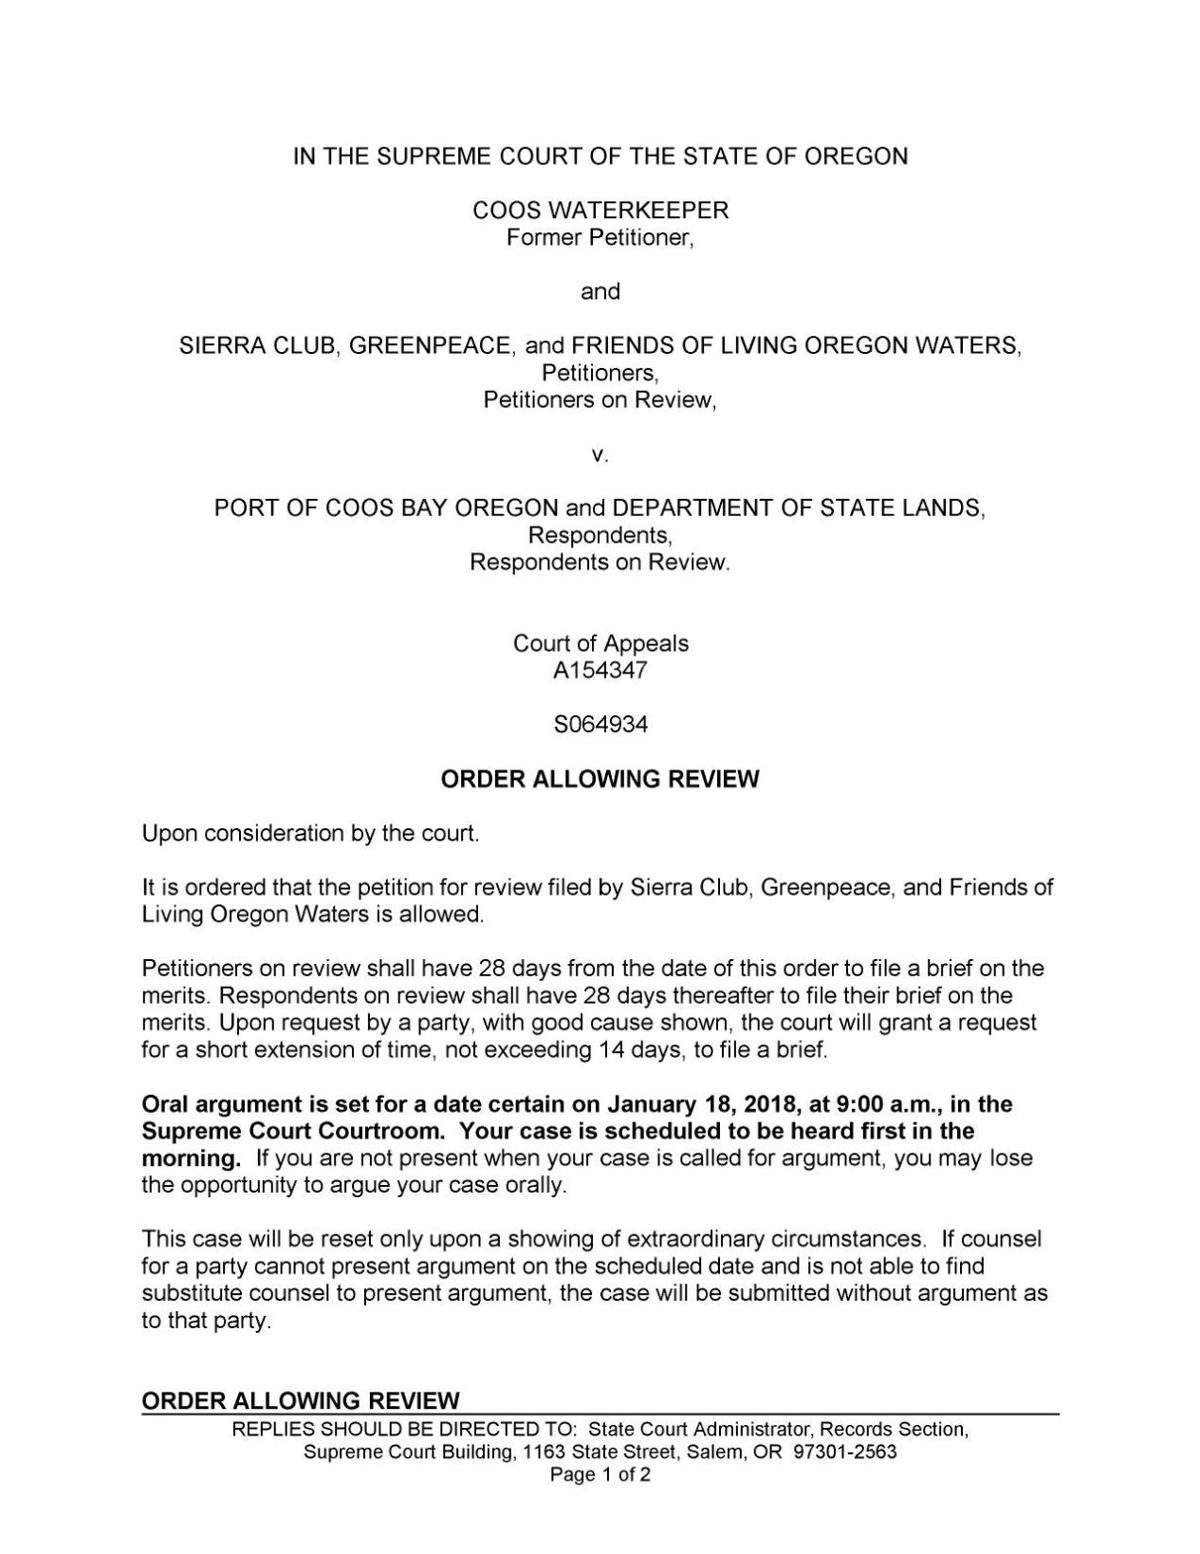 Supreme Court of Oregon order allowing review